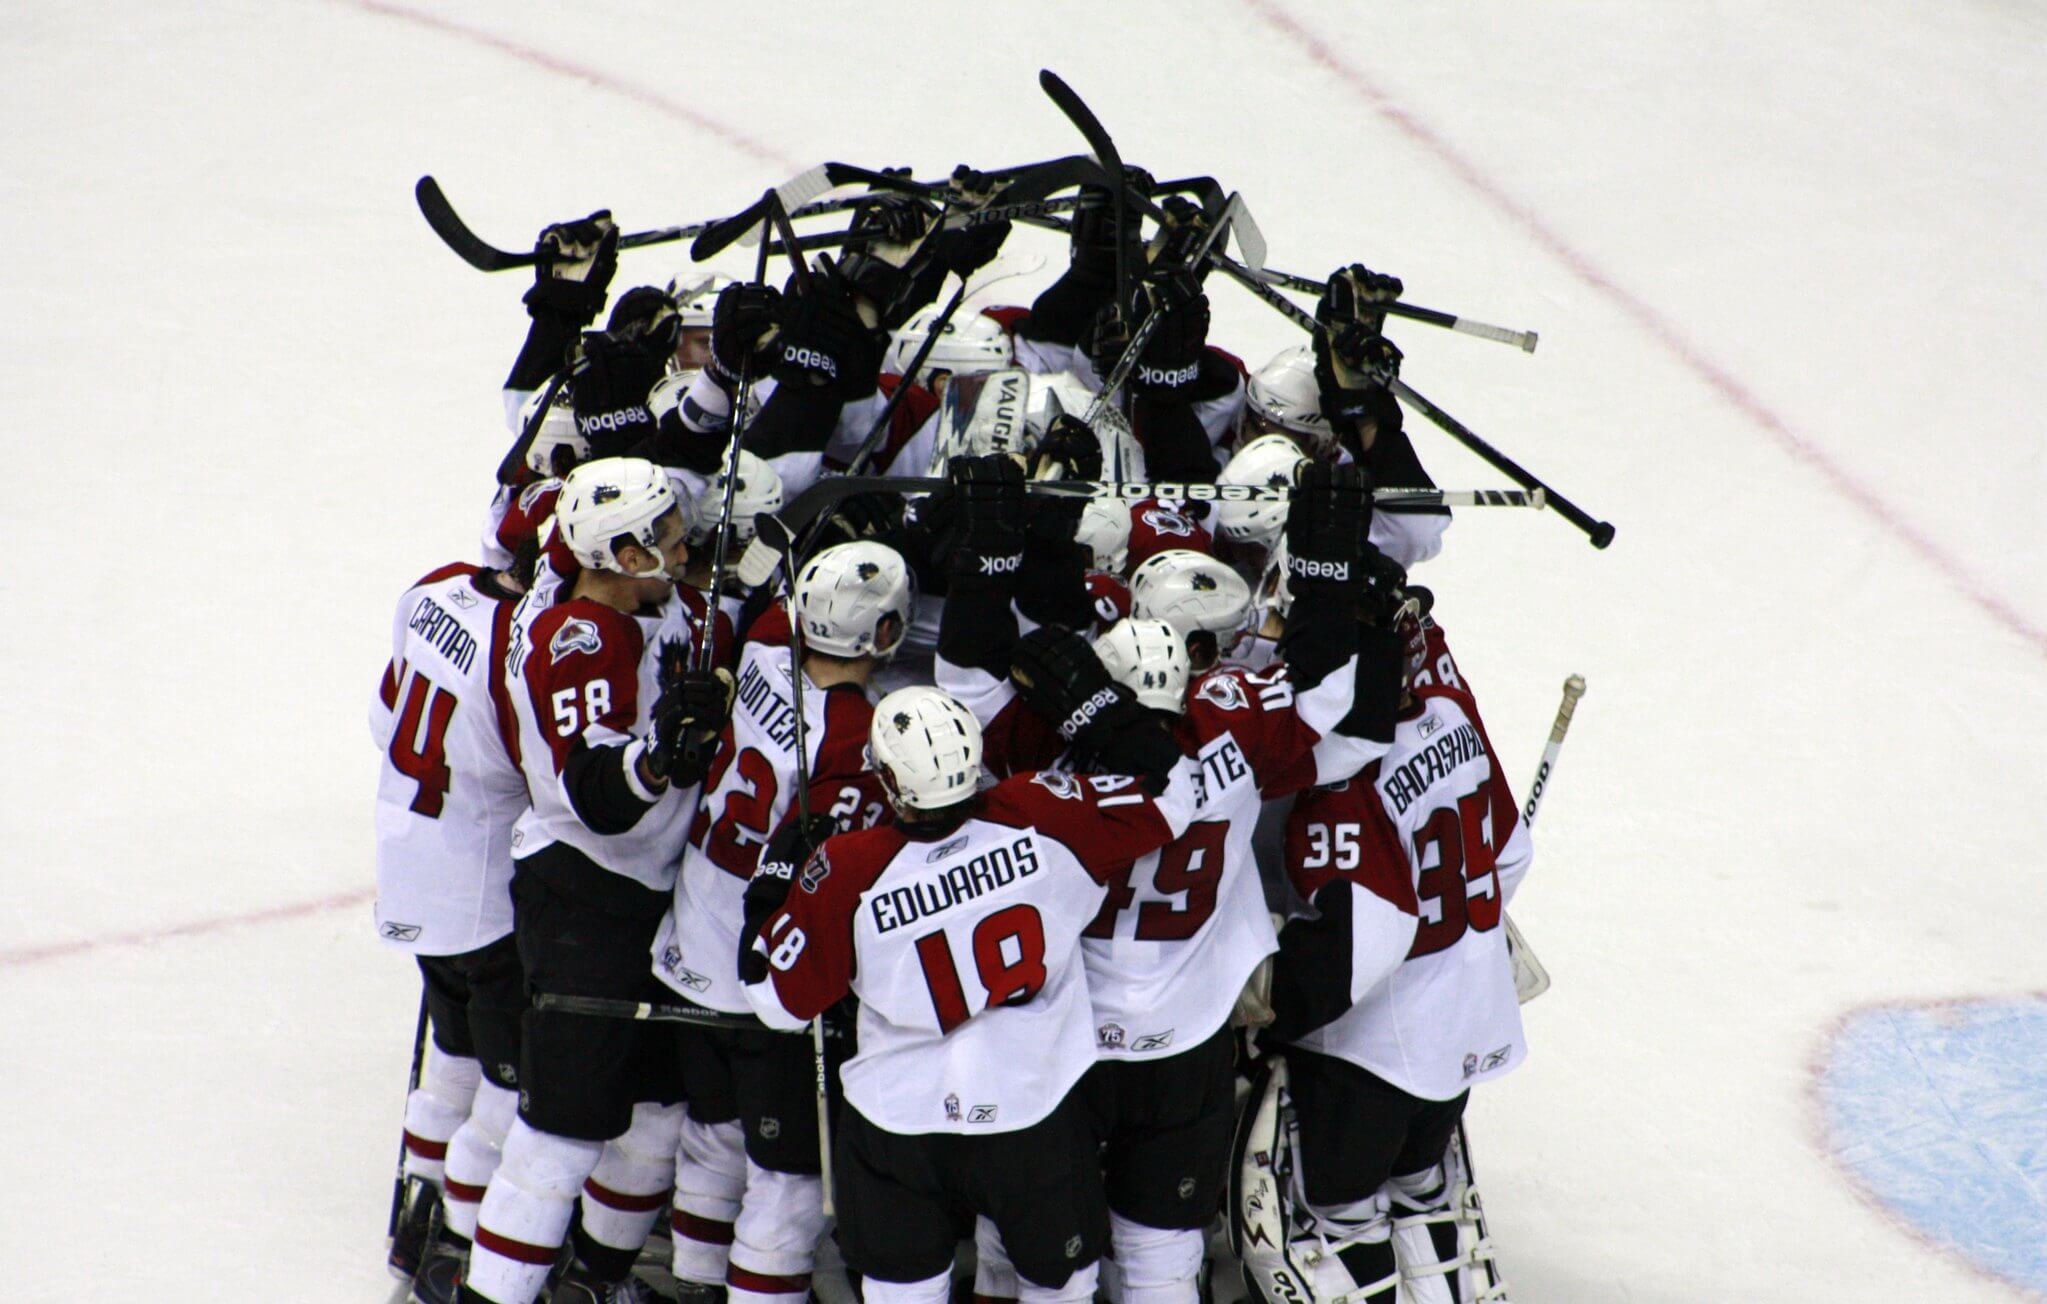 Cleveland Monsters win victory hockey